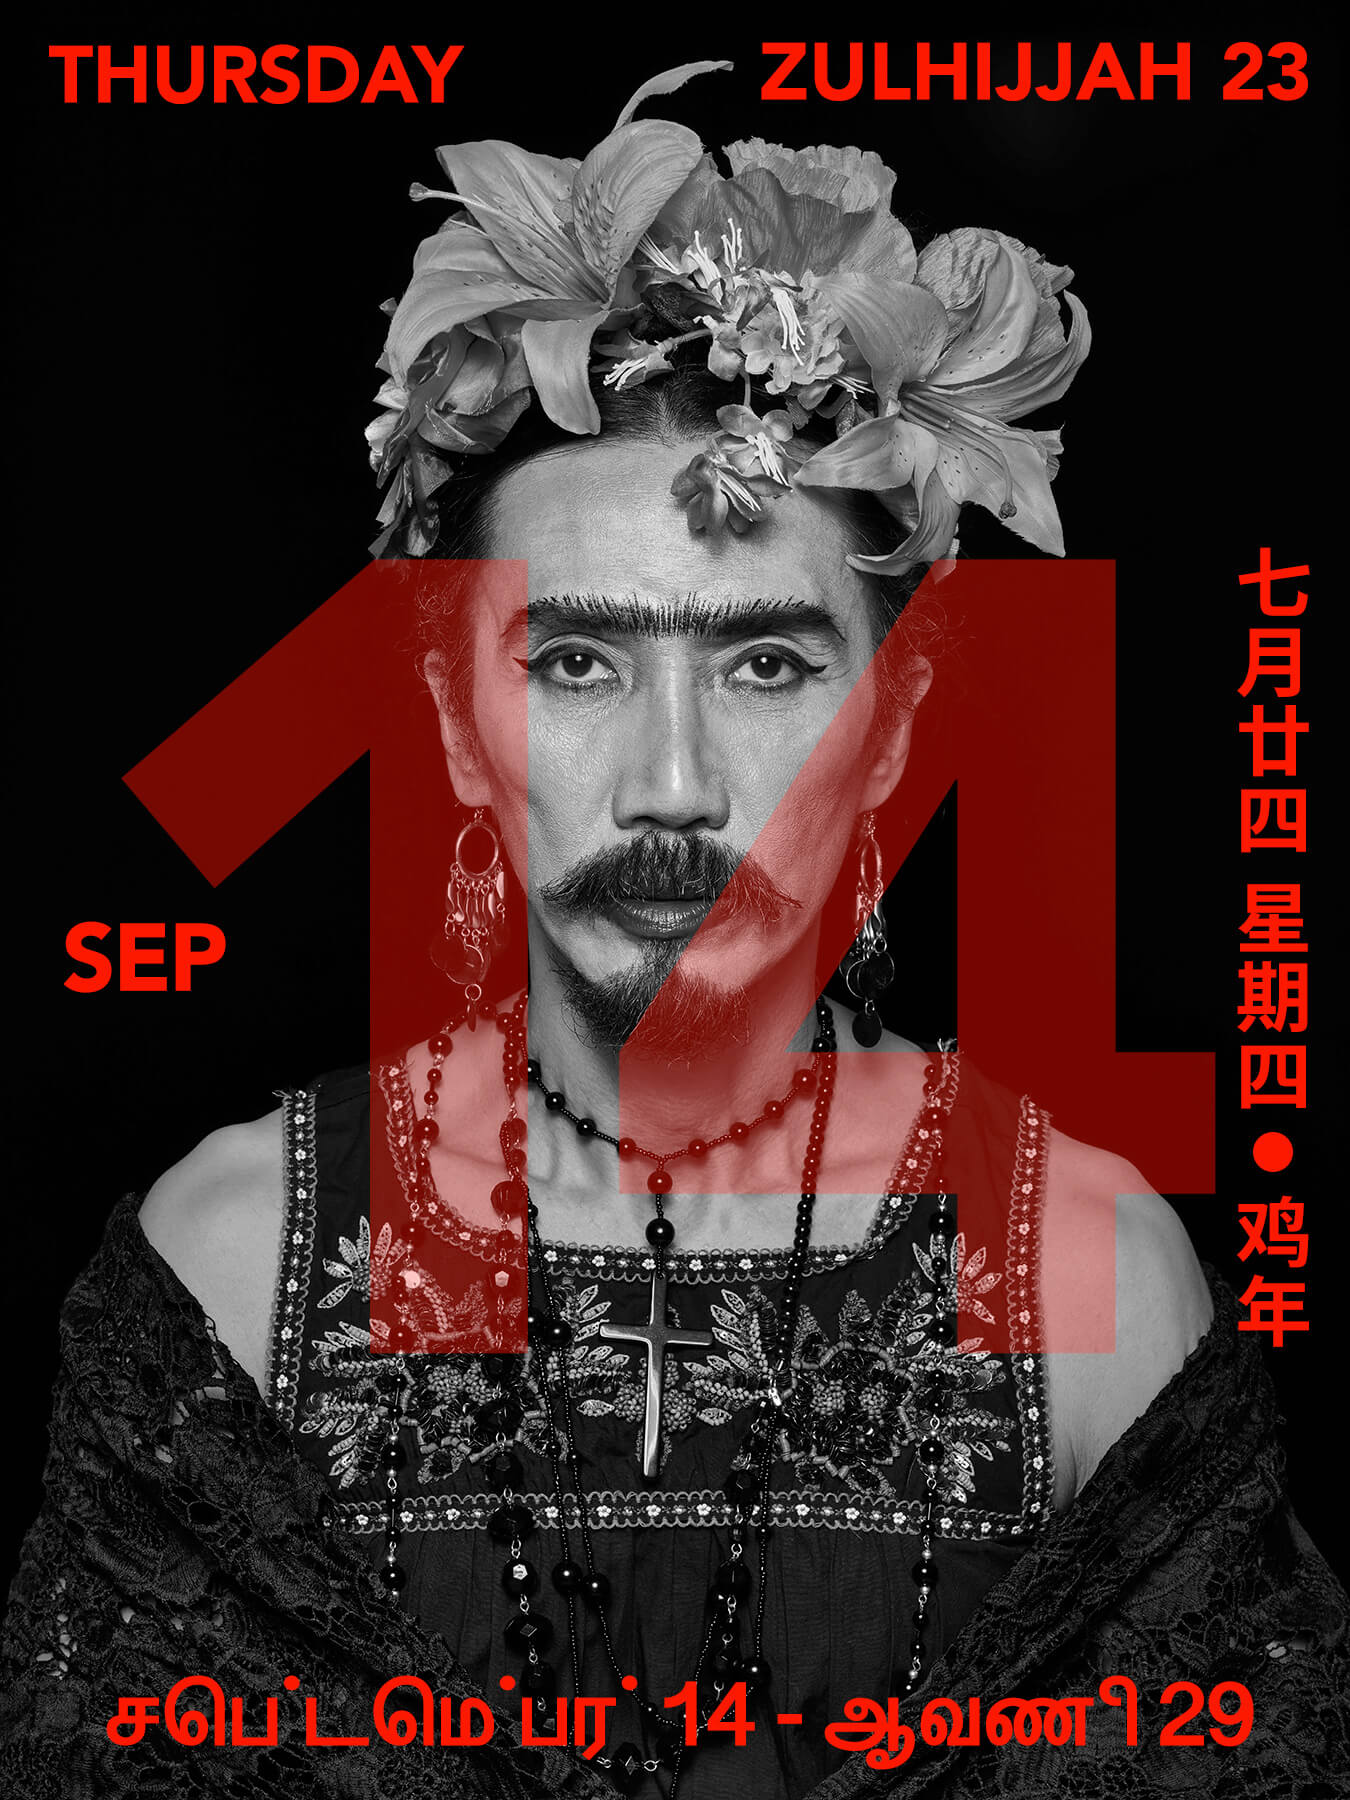 14 Sep 2017: Derong is styled like Frida Kahlo to commemorate her 110th birthday